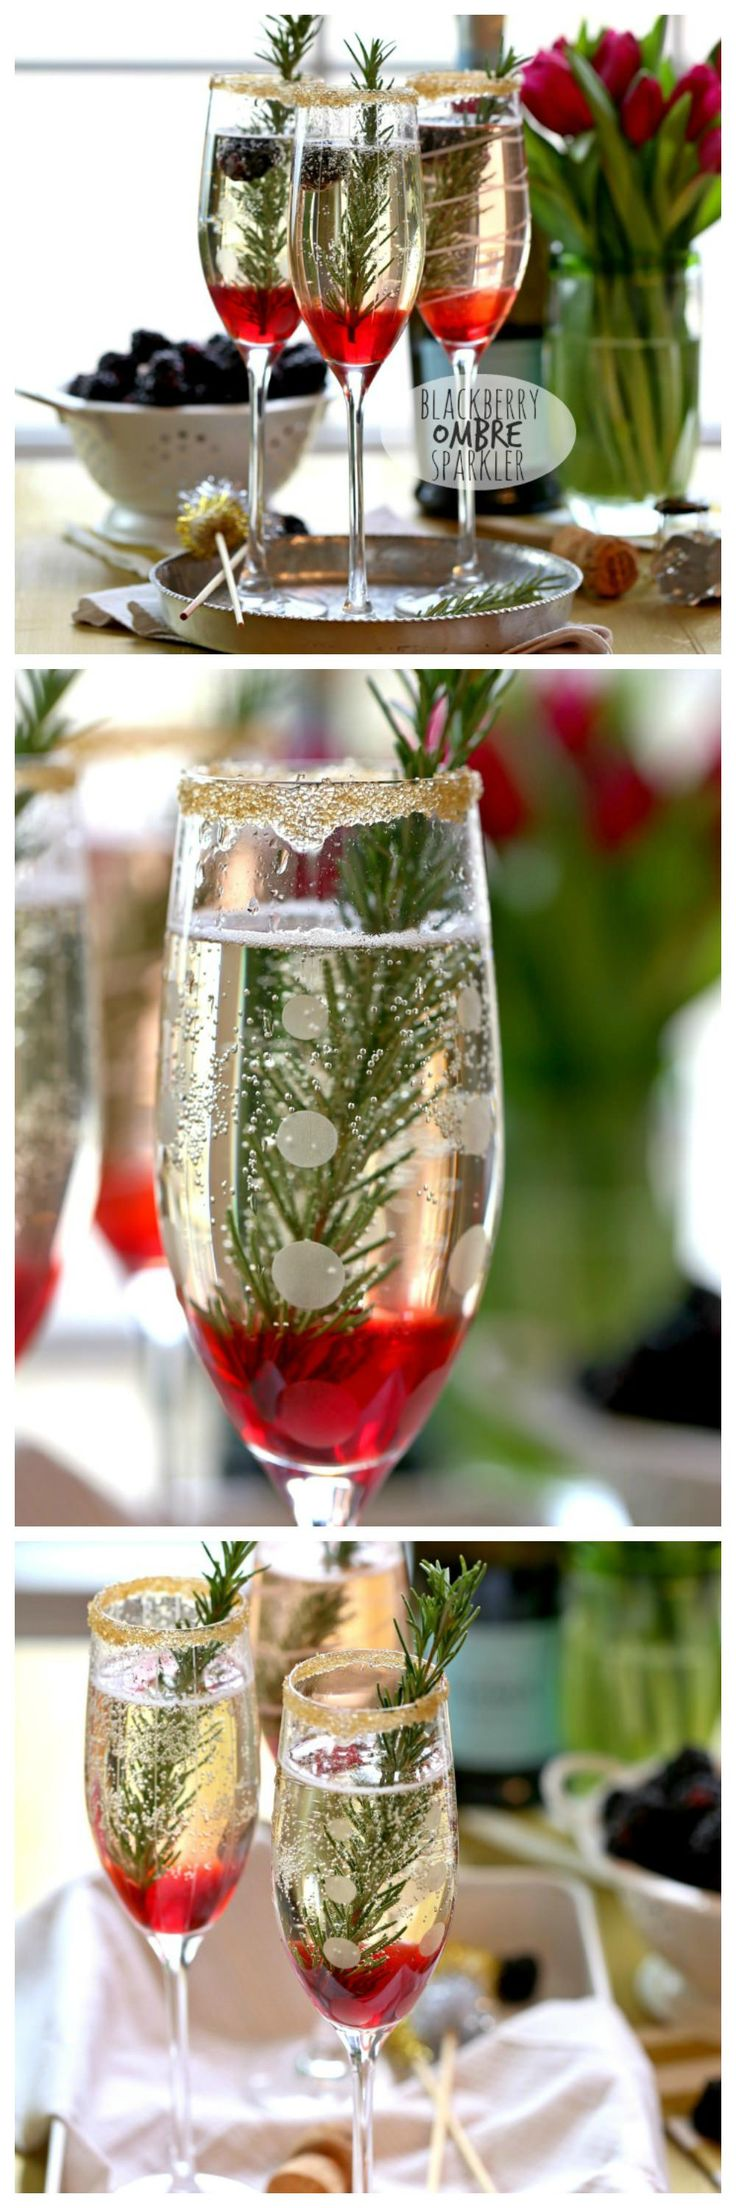 17 Best ideas about Christmas Cocktail Party on Pinterest | Christmas drinks, Adult holiday ...